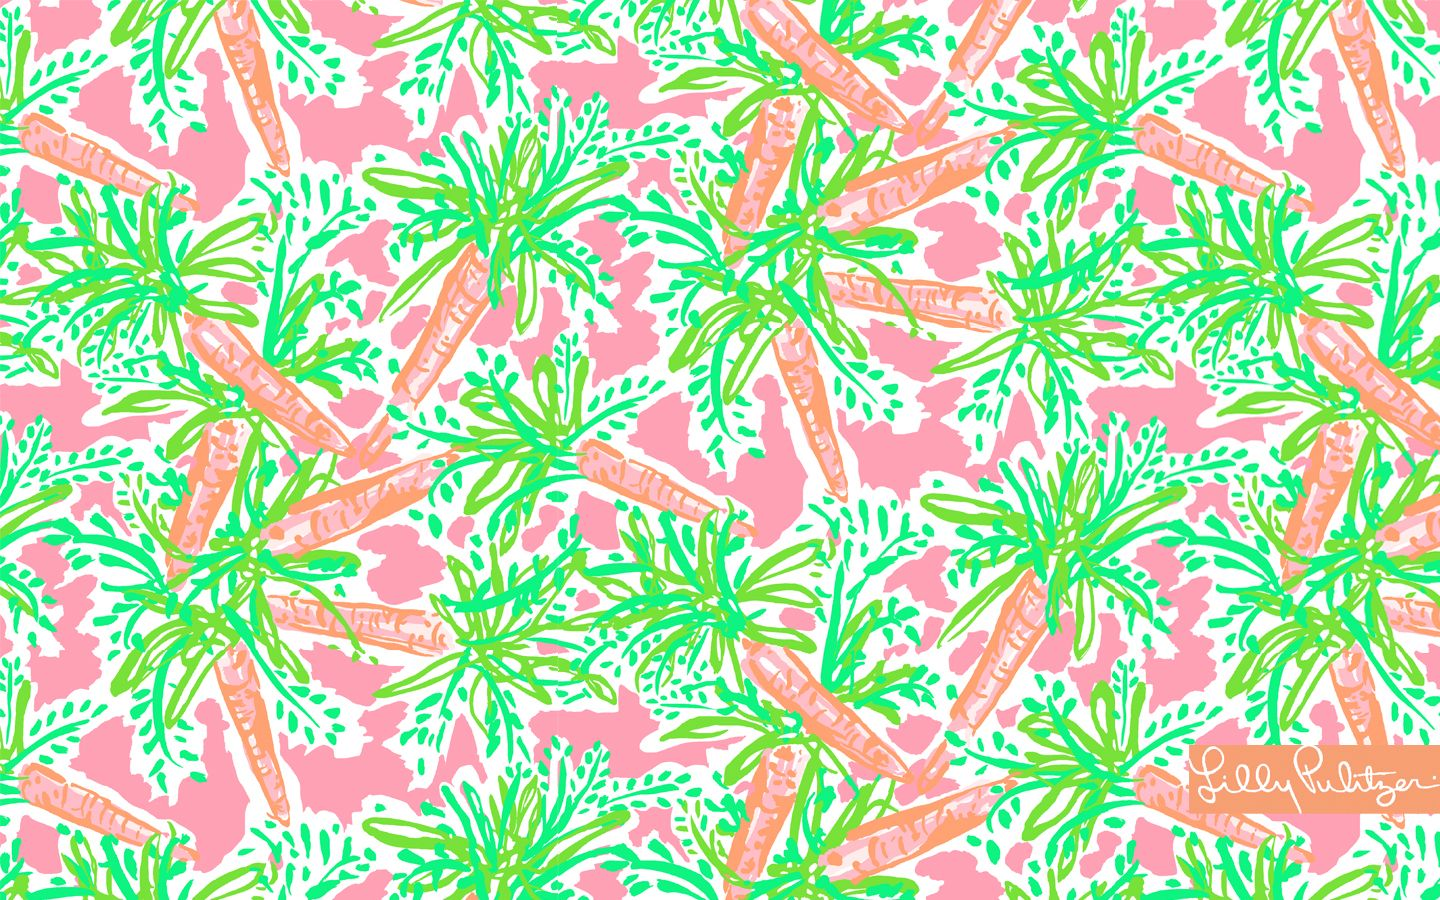 Lilly Pulitzer Patterns Lilly Pulitzer Nibbles Desktop Background Iphone Wallpapers